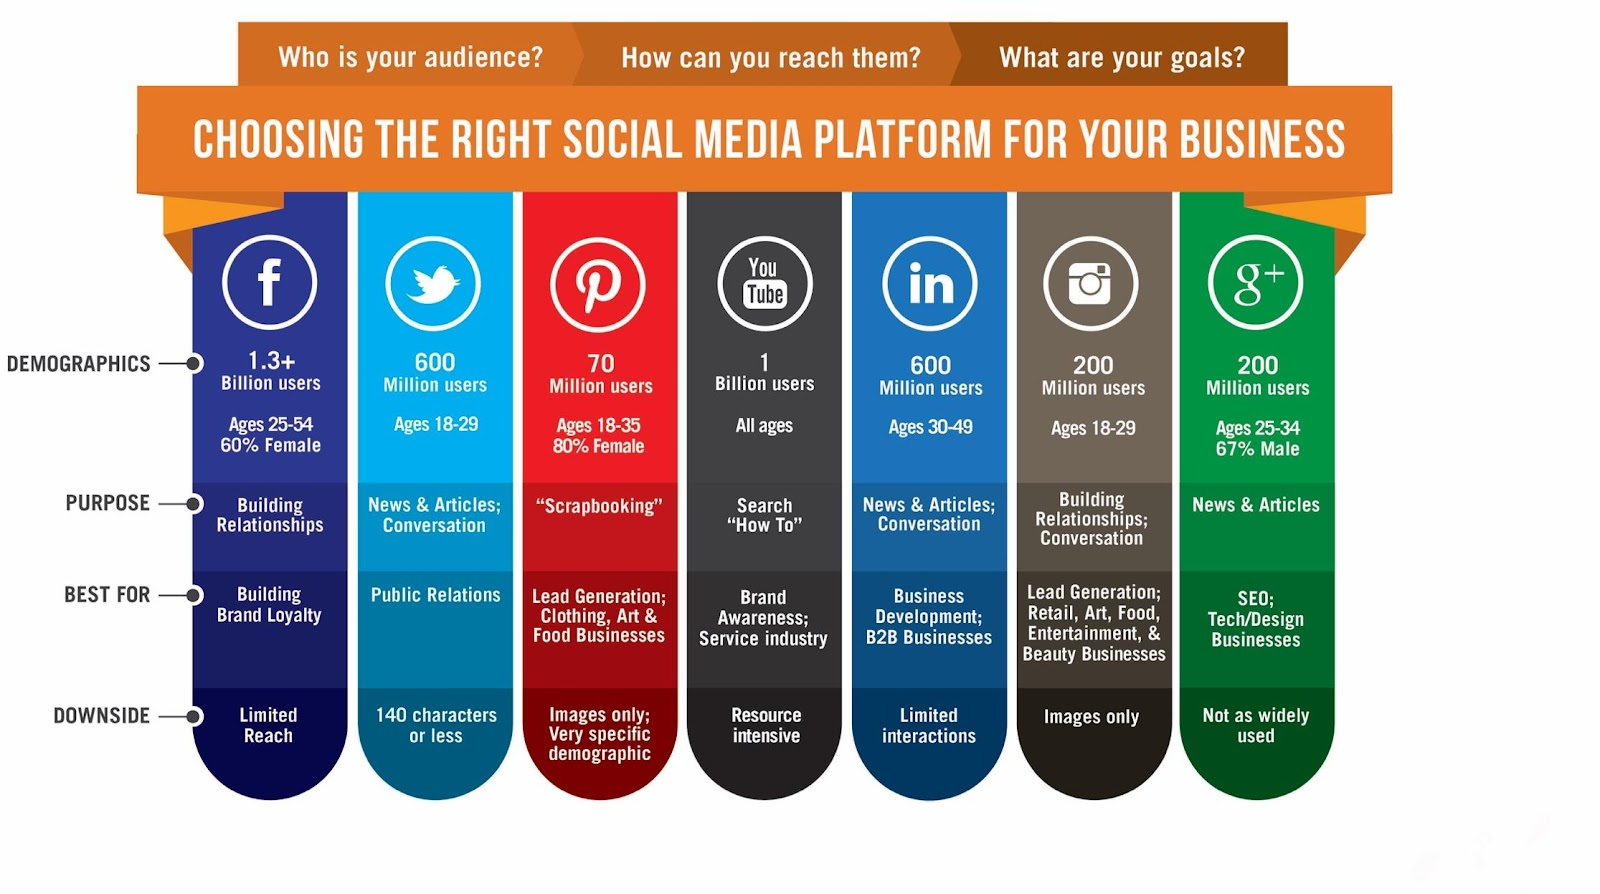 social media marketing content strategy - choosing the right platforms for your business